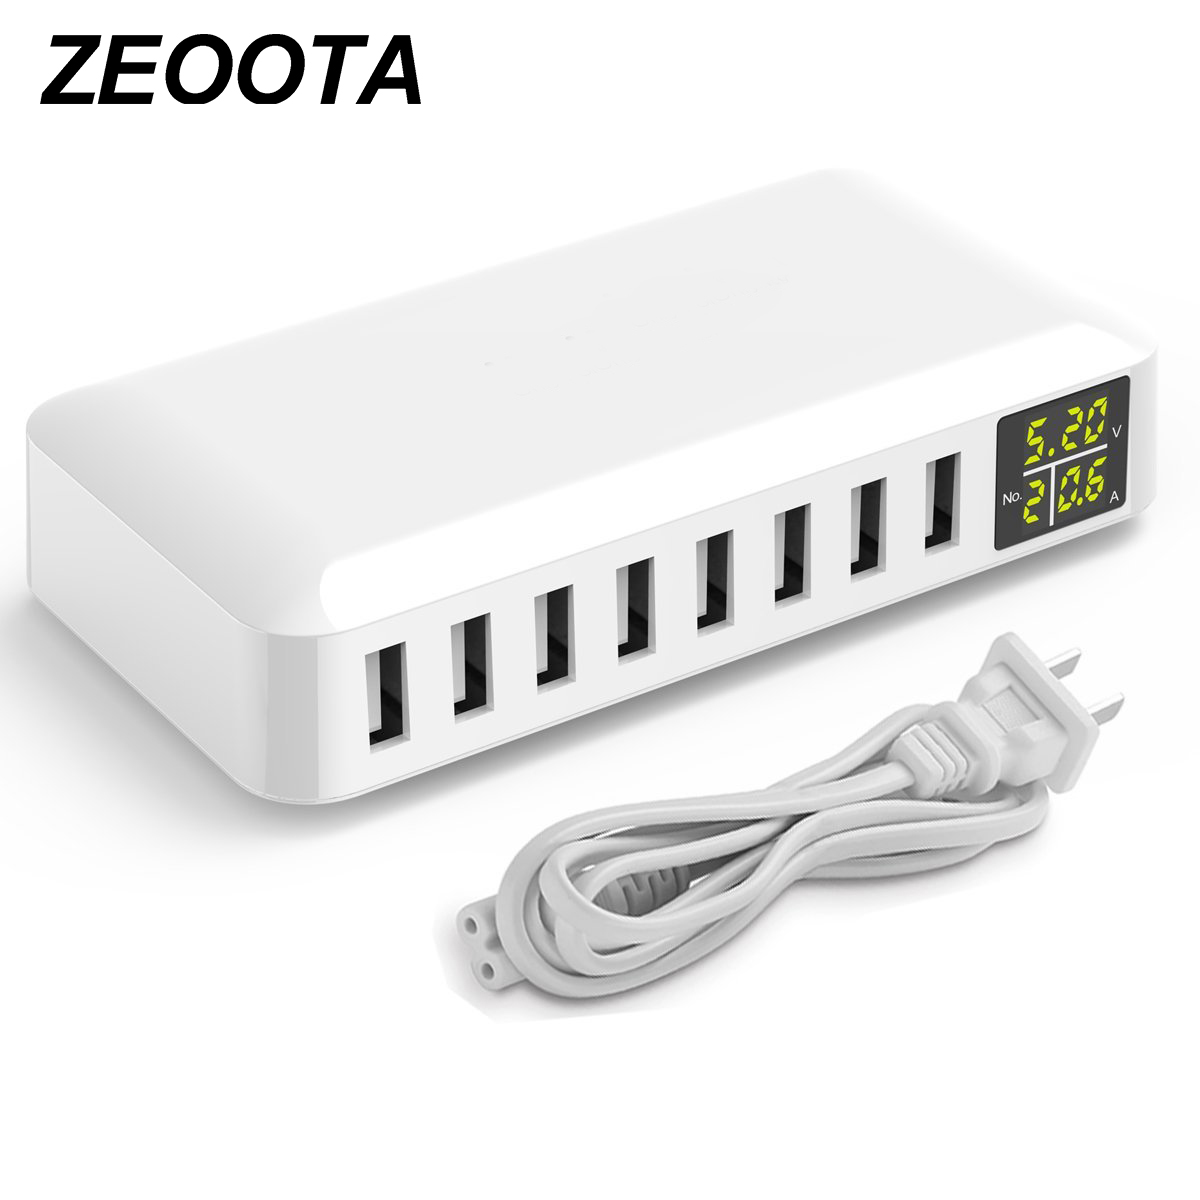 USB Charger Multi ports 8-Port Wall Charger LCD Display 40W MAX 8A USB Charging Station For iPhone iPad Samsung HTC Tablets стоимость